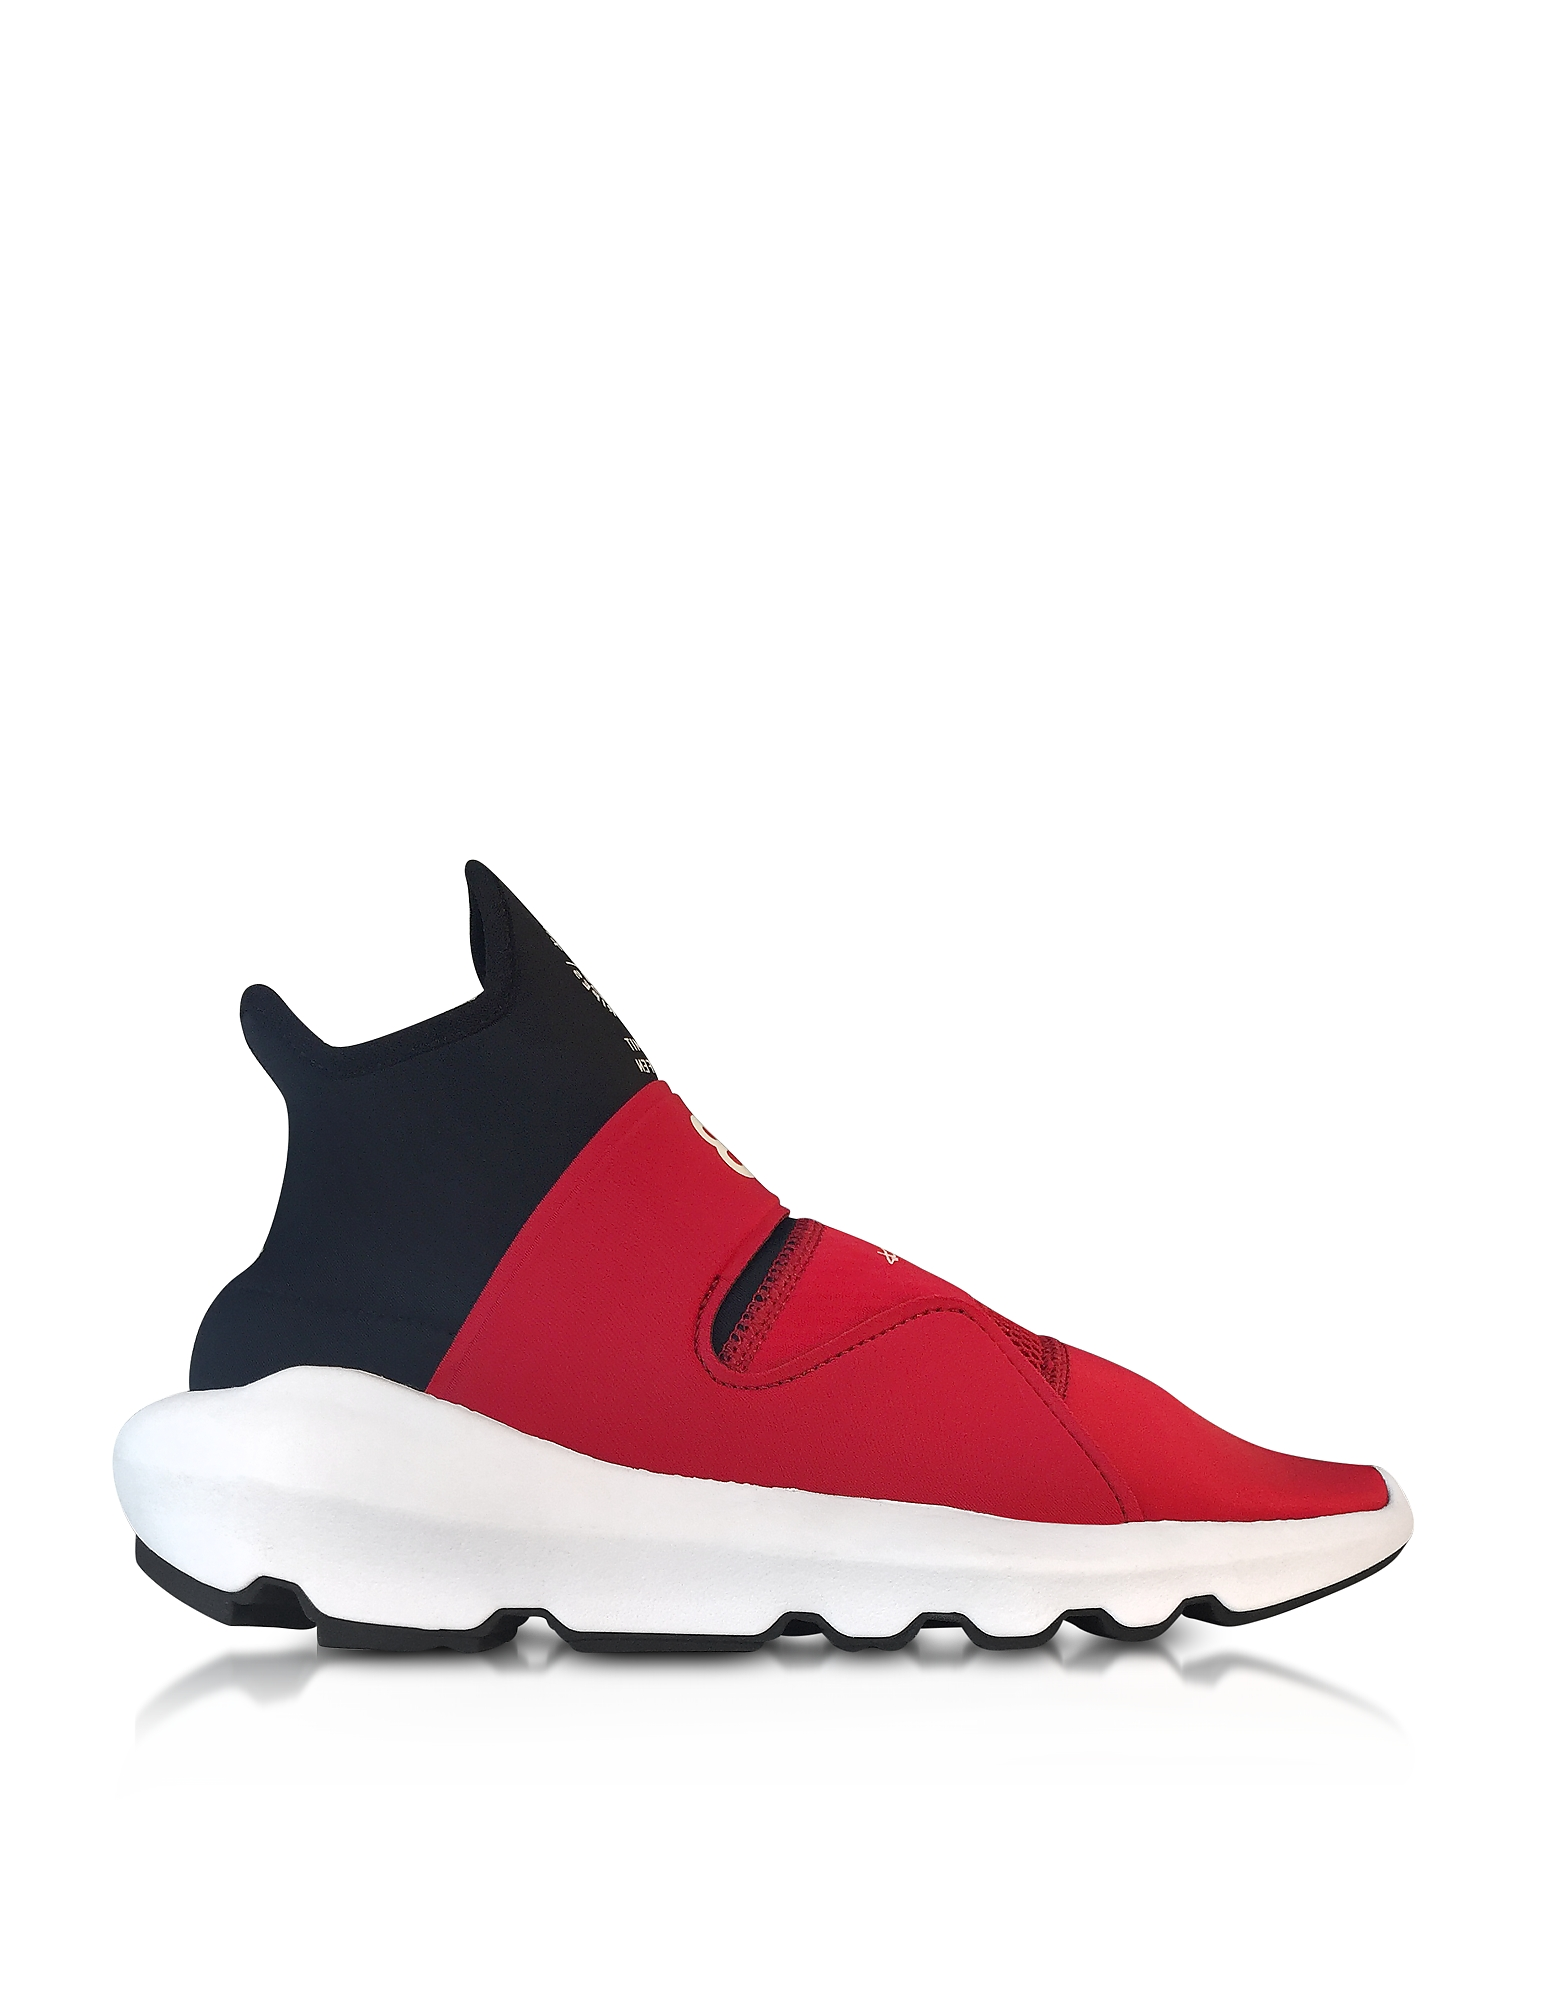 Y-3 Shoes, Chili red Y-3 Suberou Slip on Sneakers